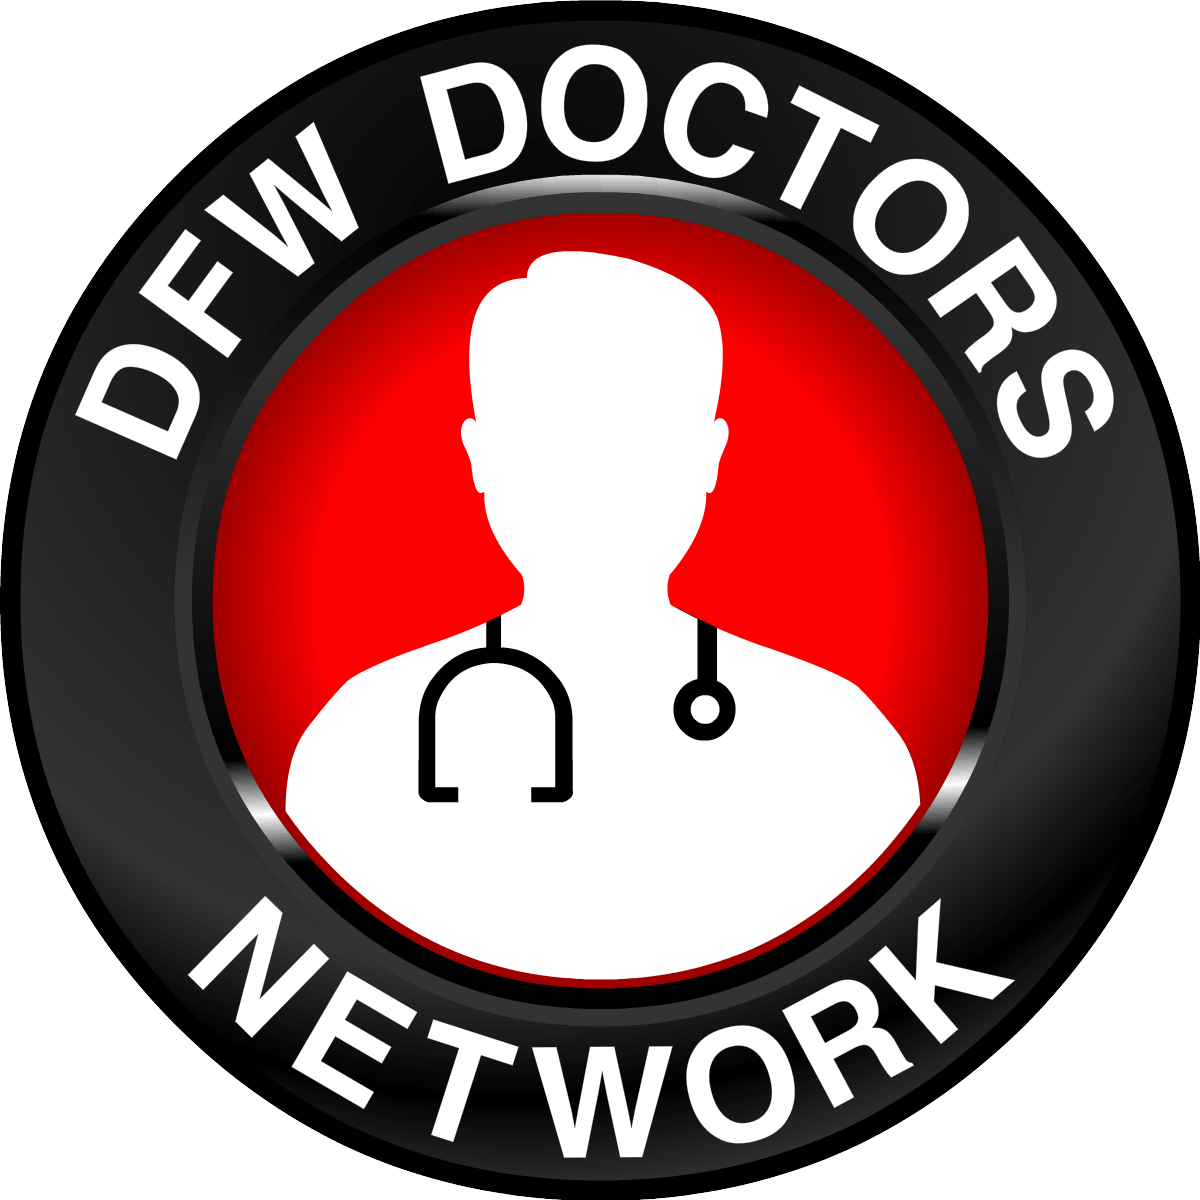 DFW Doctors Network - Reliable Local Doctors in DFW